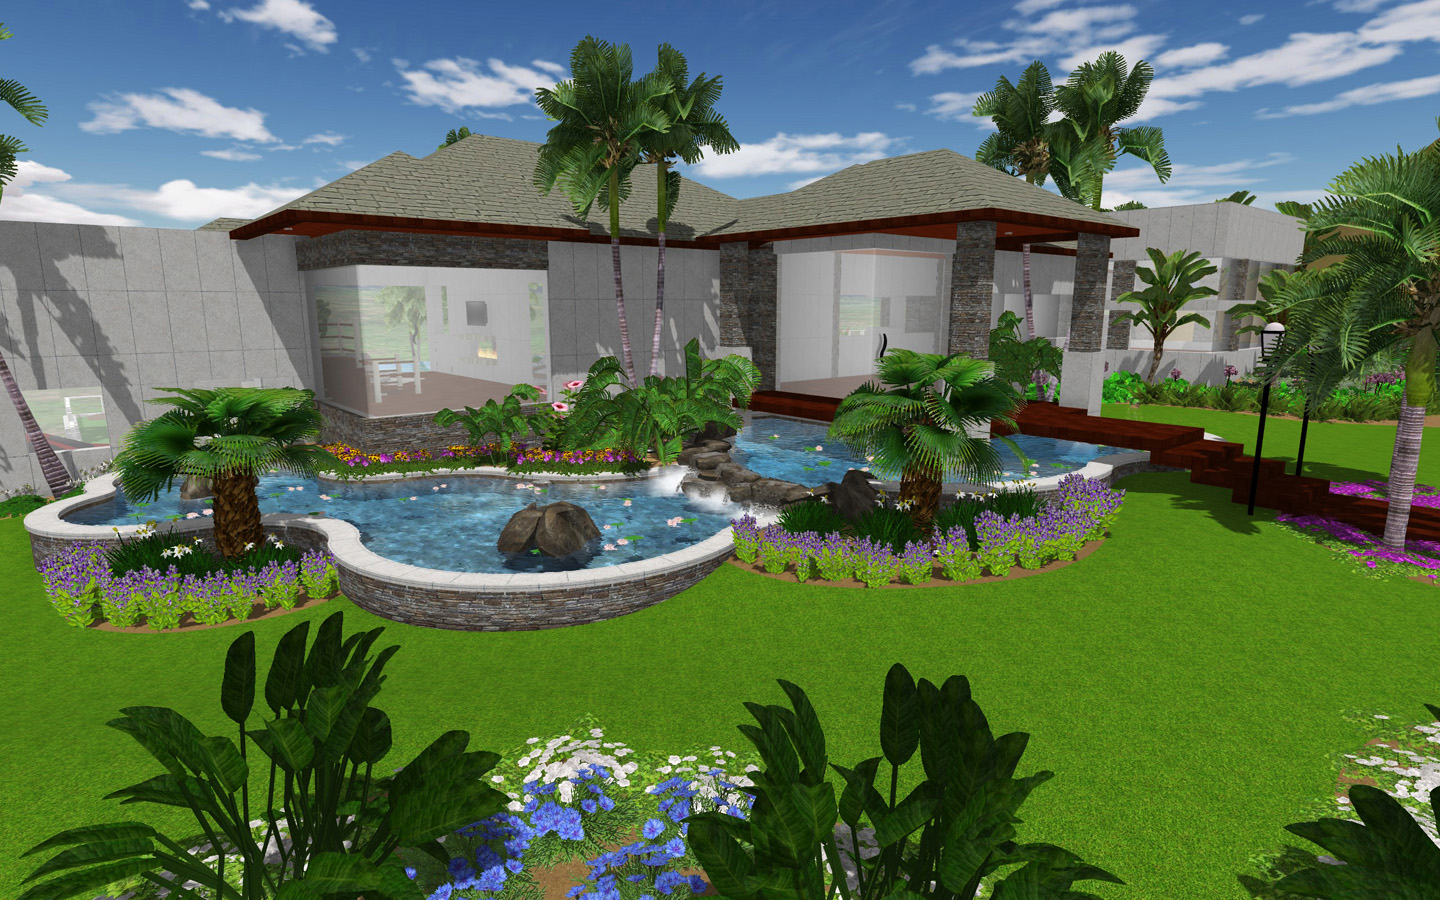 Best Free Backyard Design Software As Free Diy Landscape Design with regard to Backyard Landscape Design Software Free